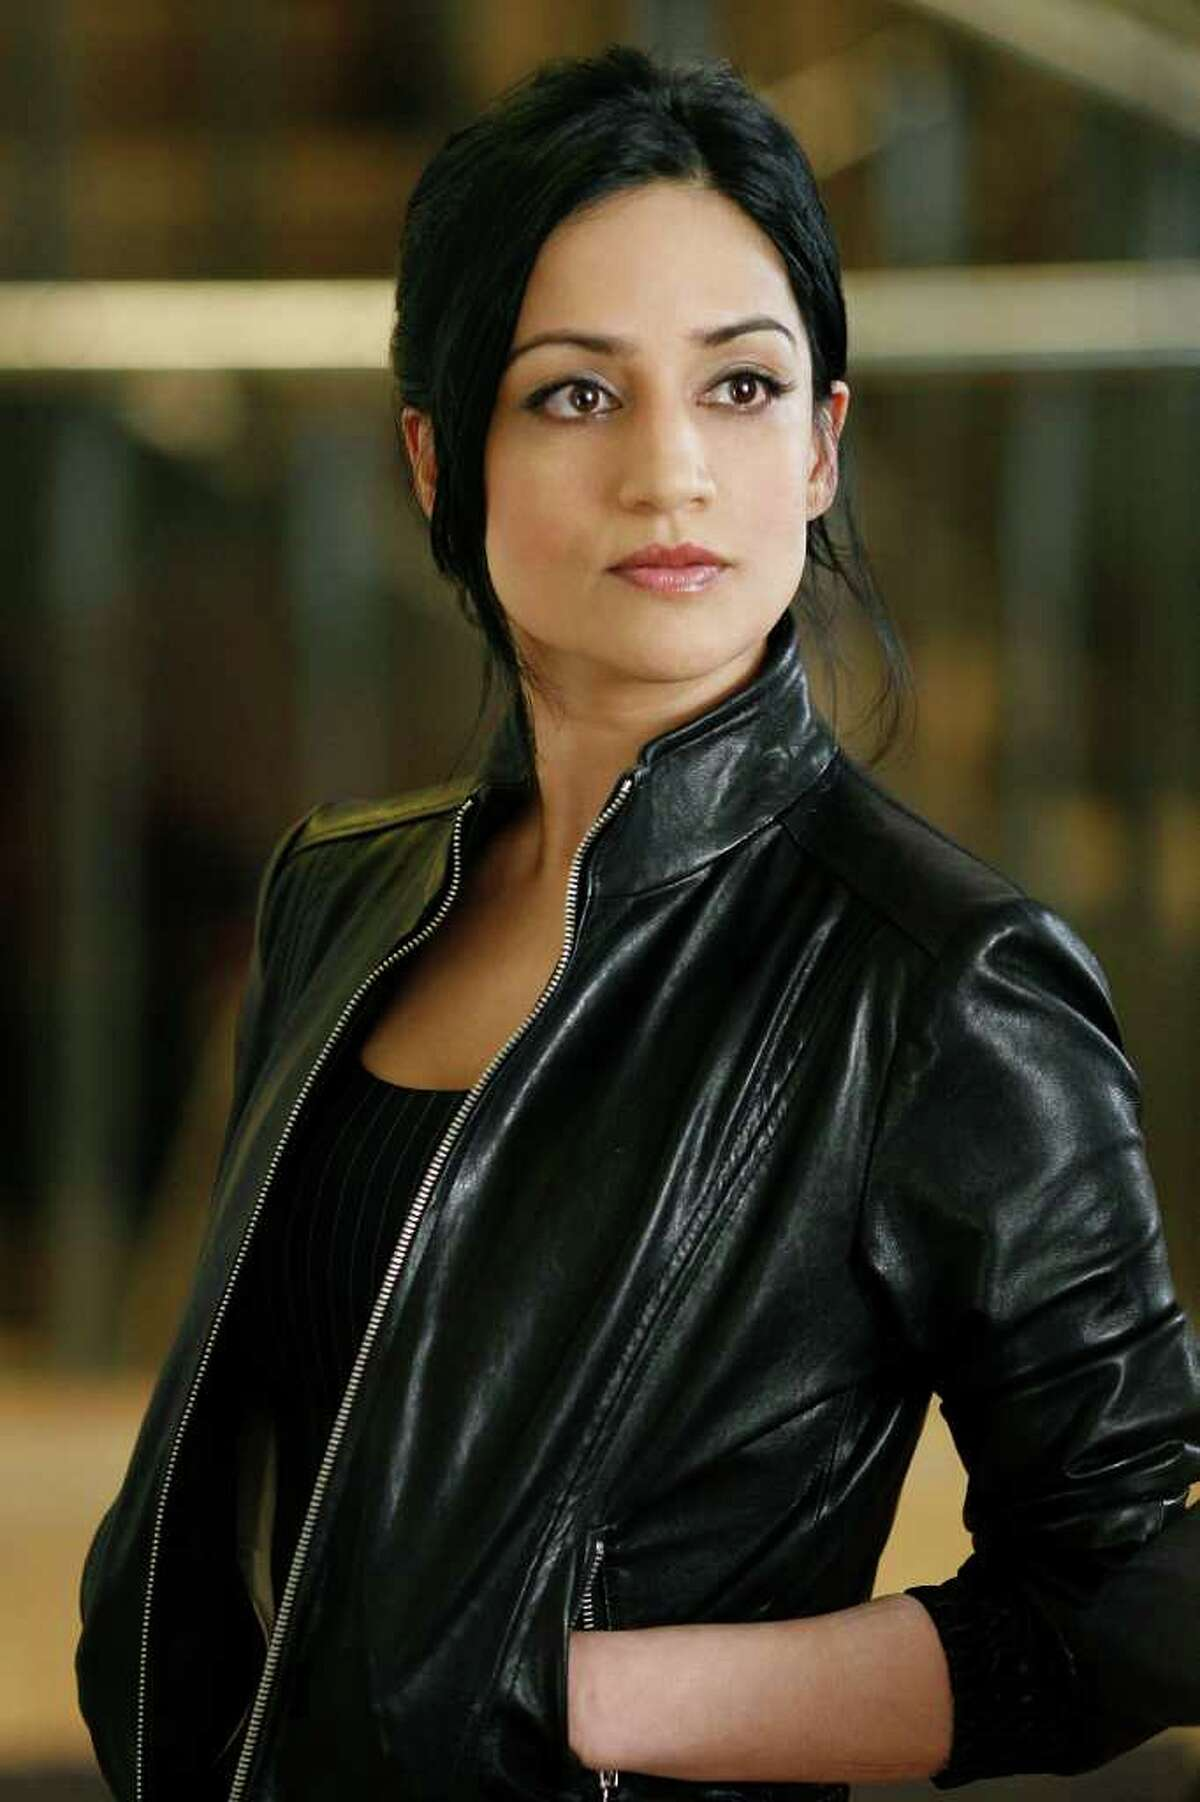 Kalinda Sharma, played by Archie Panjabi, is a bisexual character on